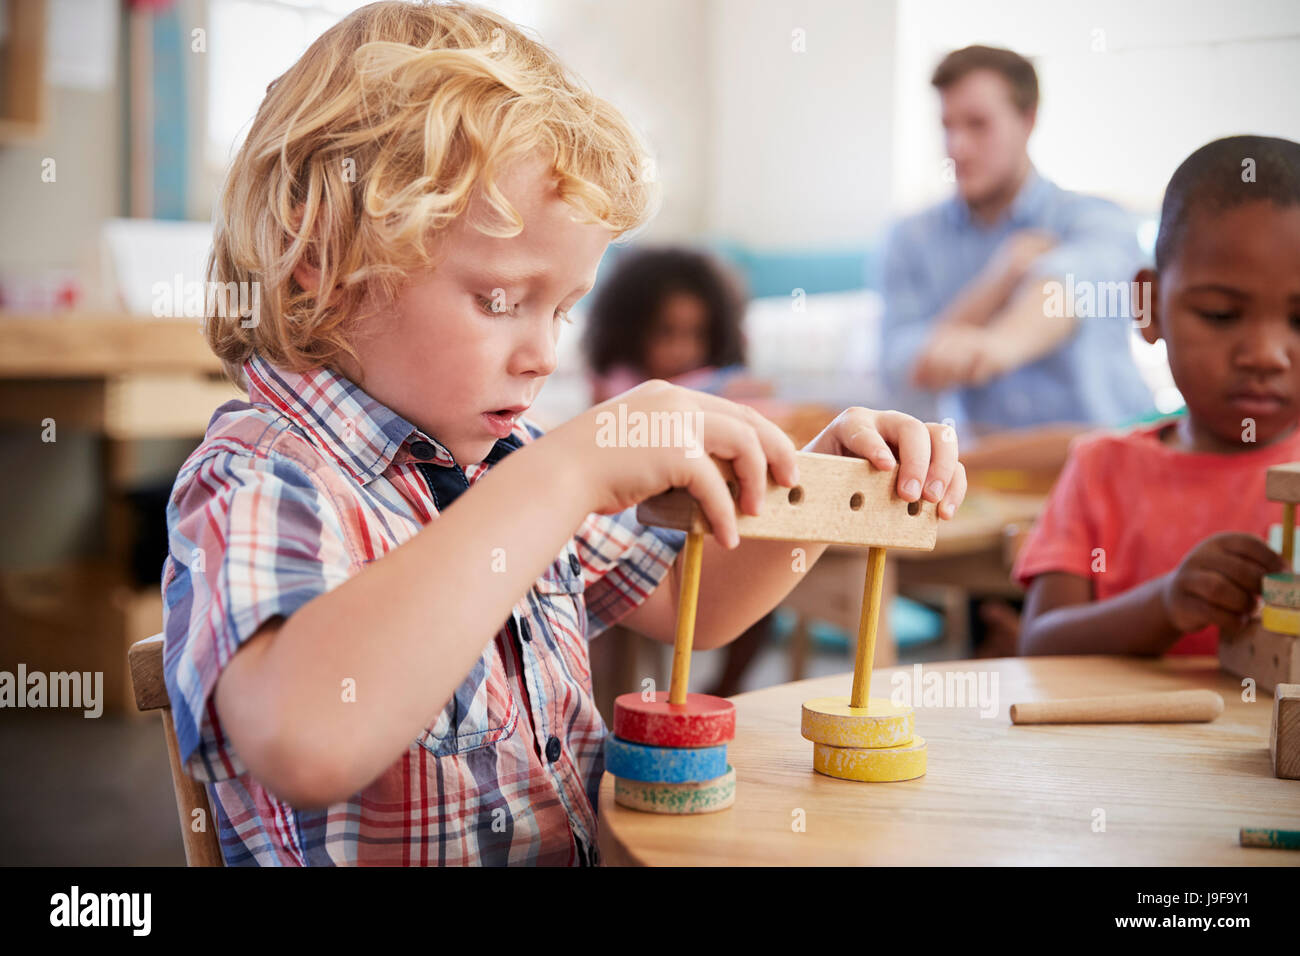 Montessori Pupil Working At Desk With Wooden Shapes - Stock Image